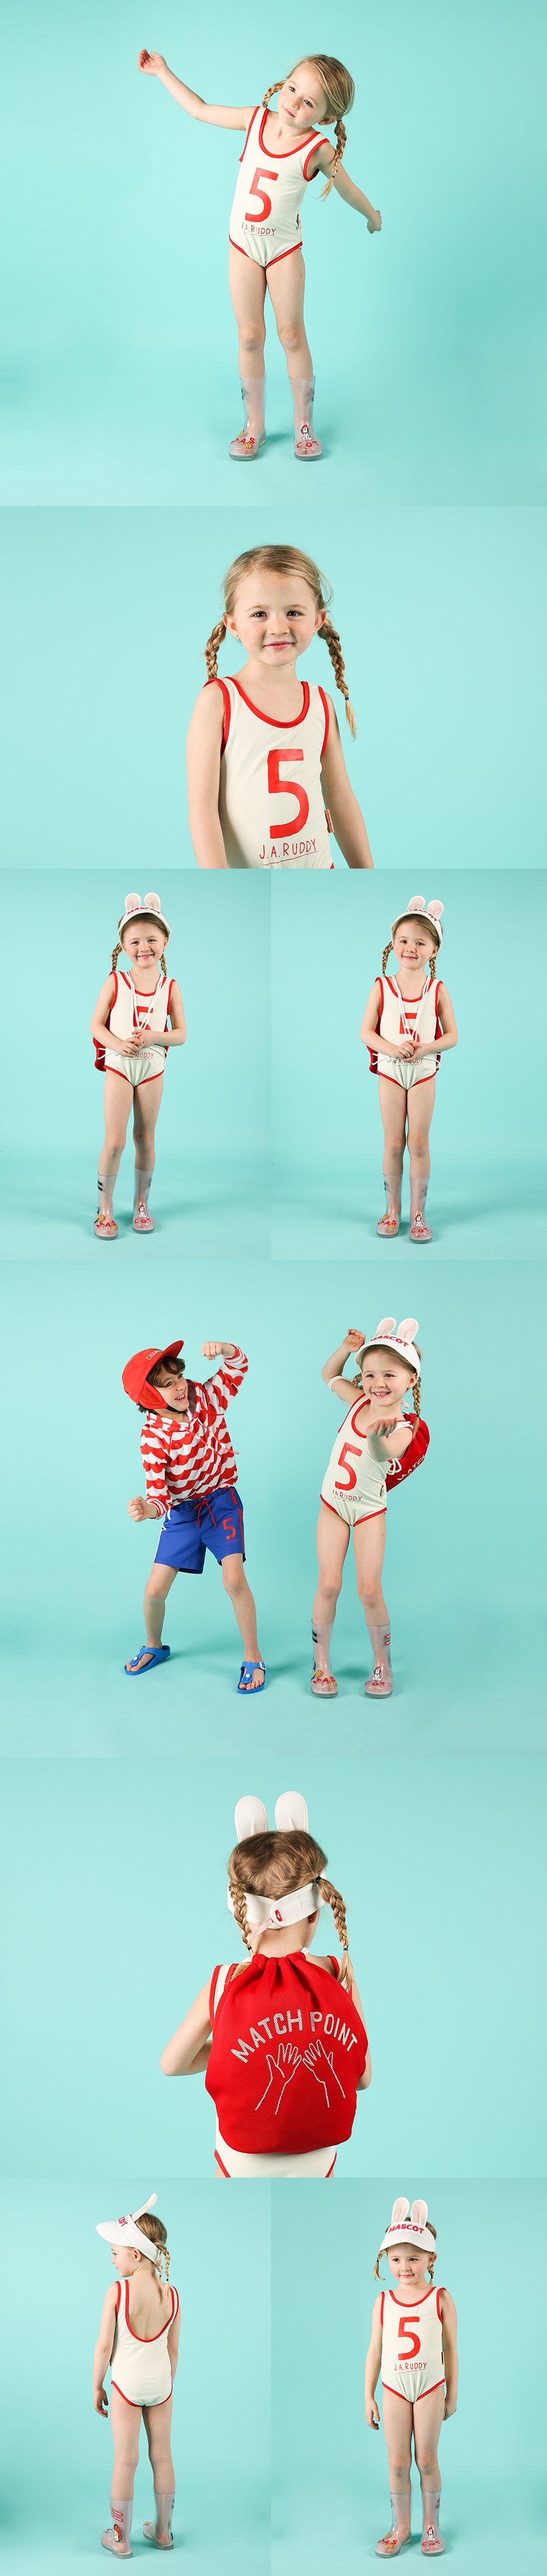 Number 5 ruddy swimsuit 상세 이미지